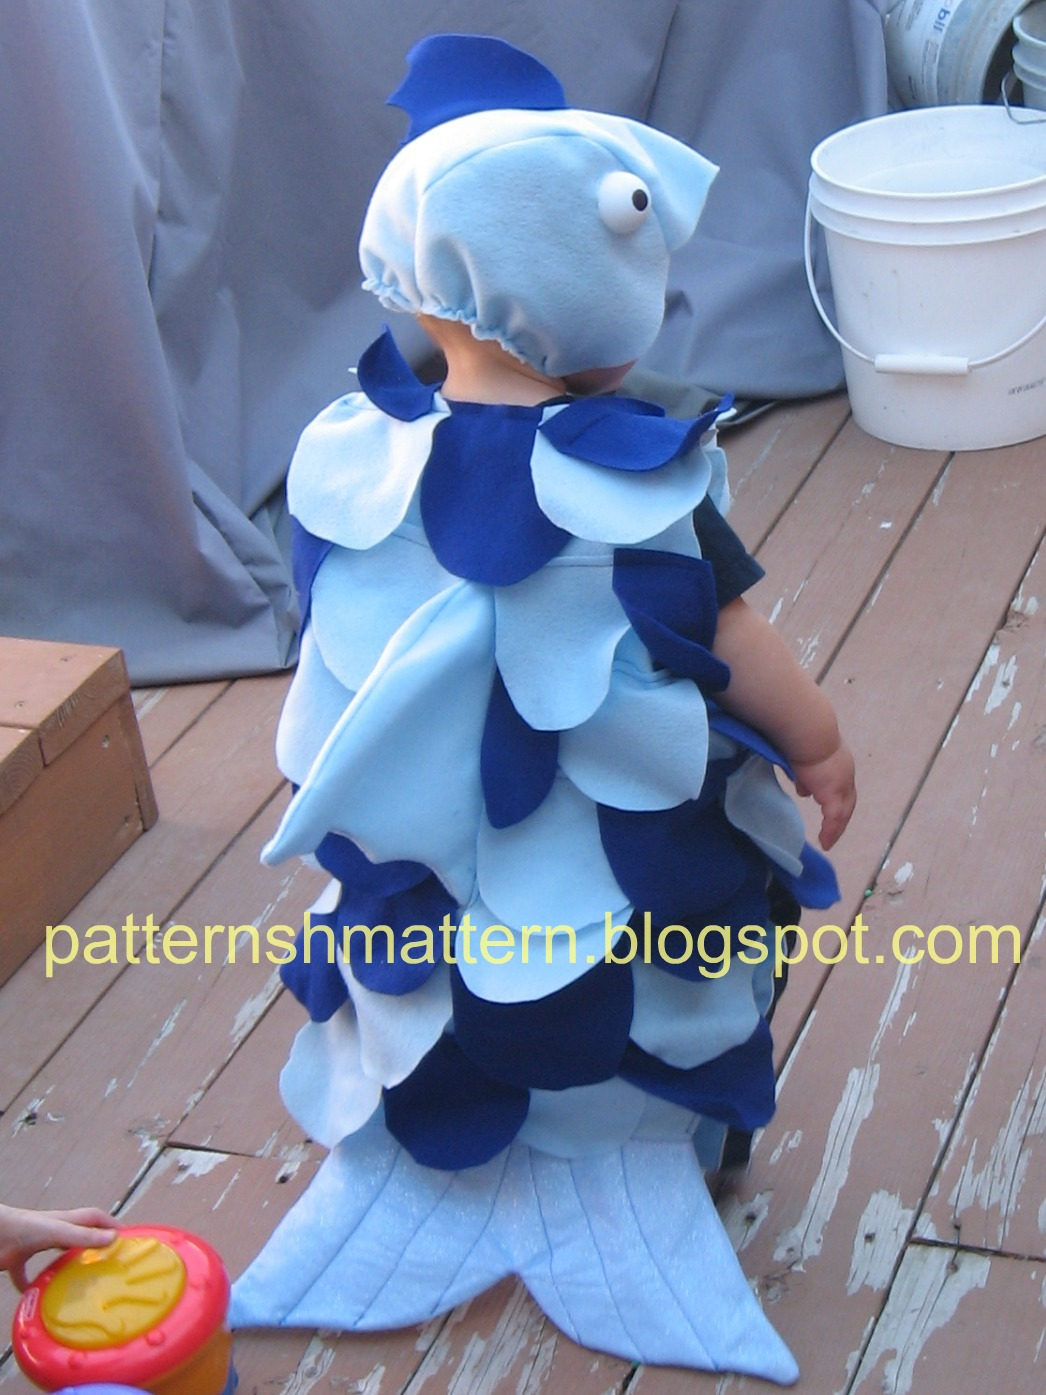 pattern shmattern halloween fish costume